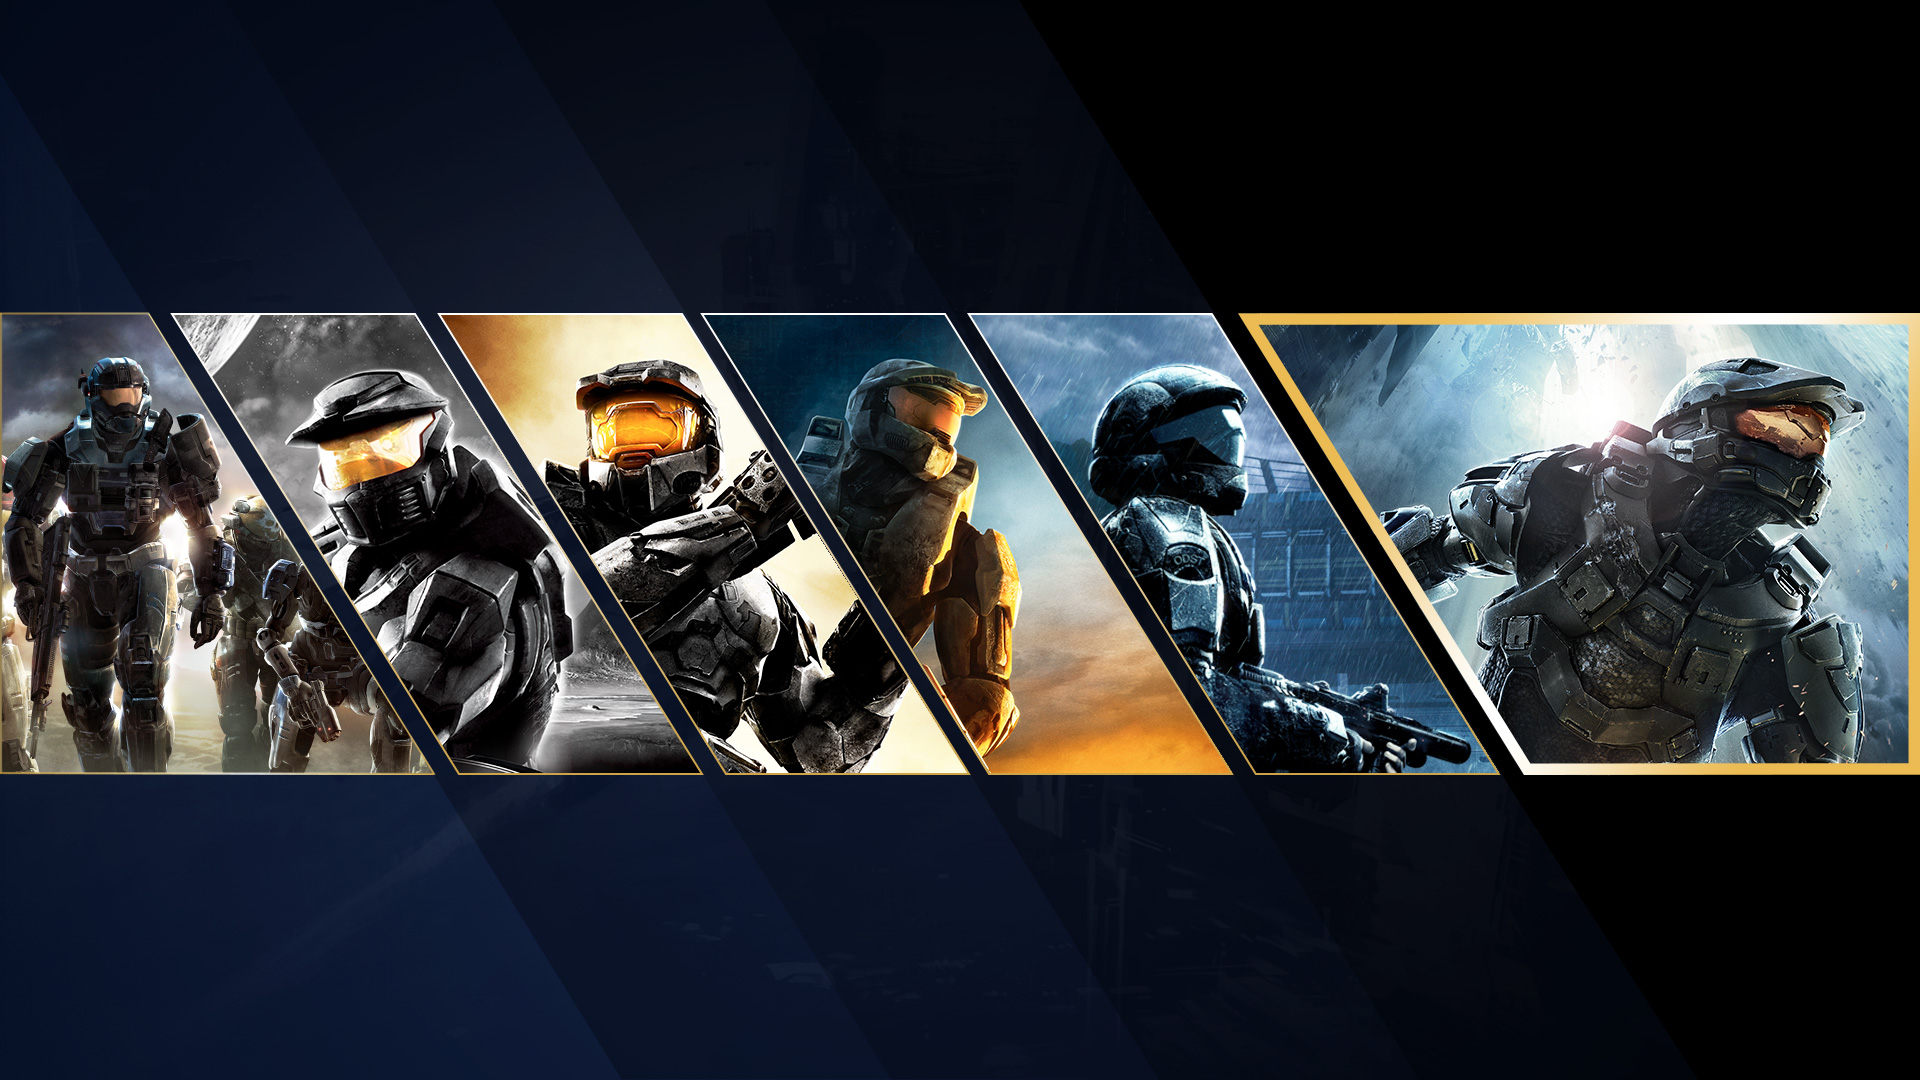 343 indica que este mes anunciara «nuevas formas y lugares» para jugar a Halo: The Master Chief Collection